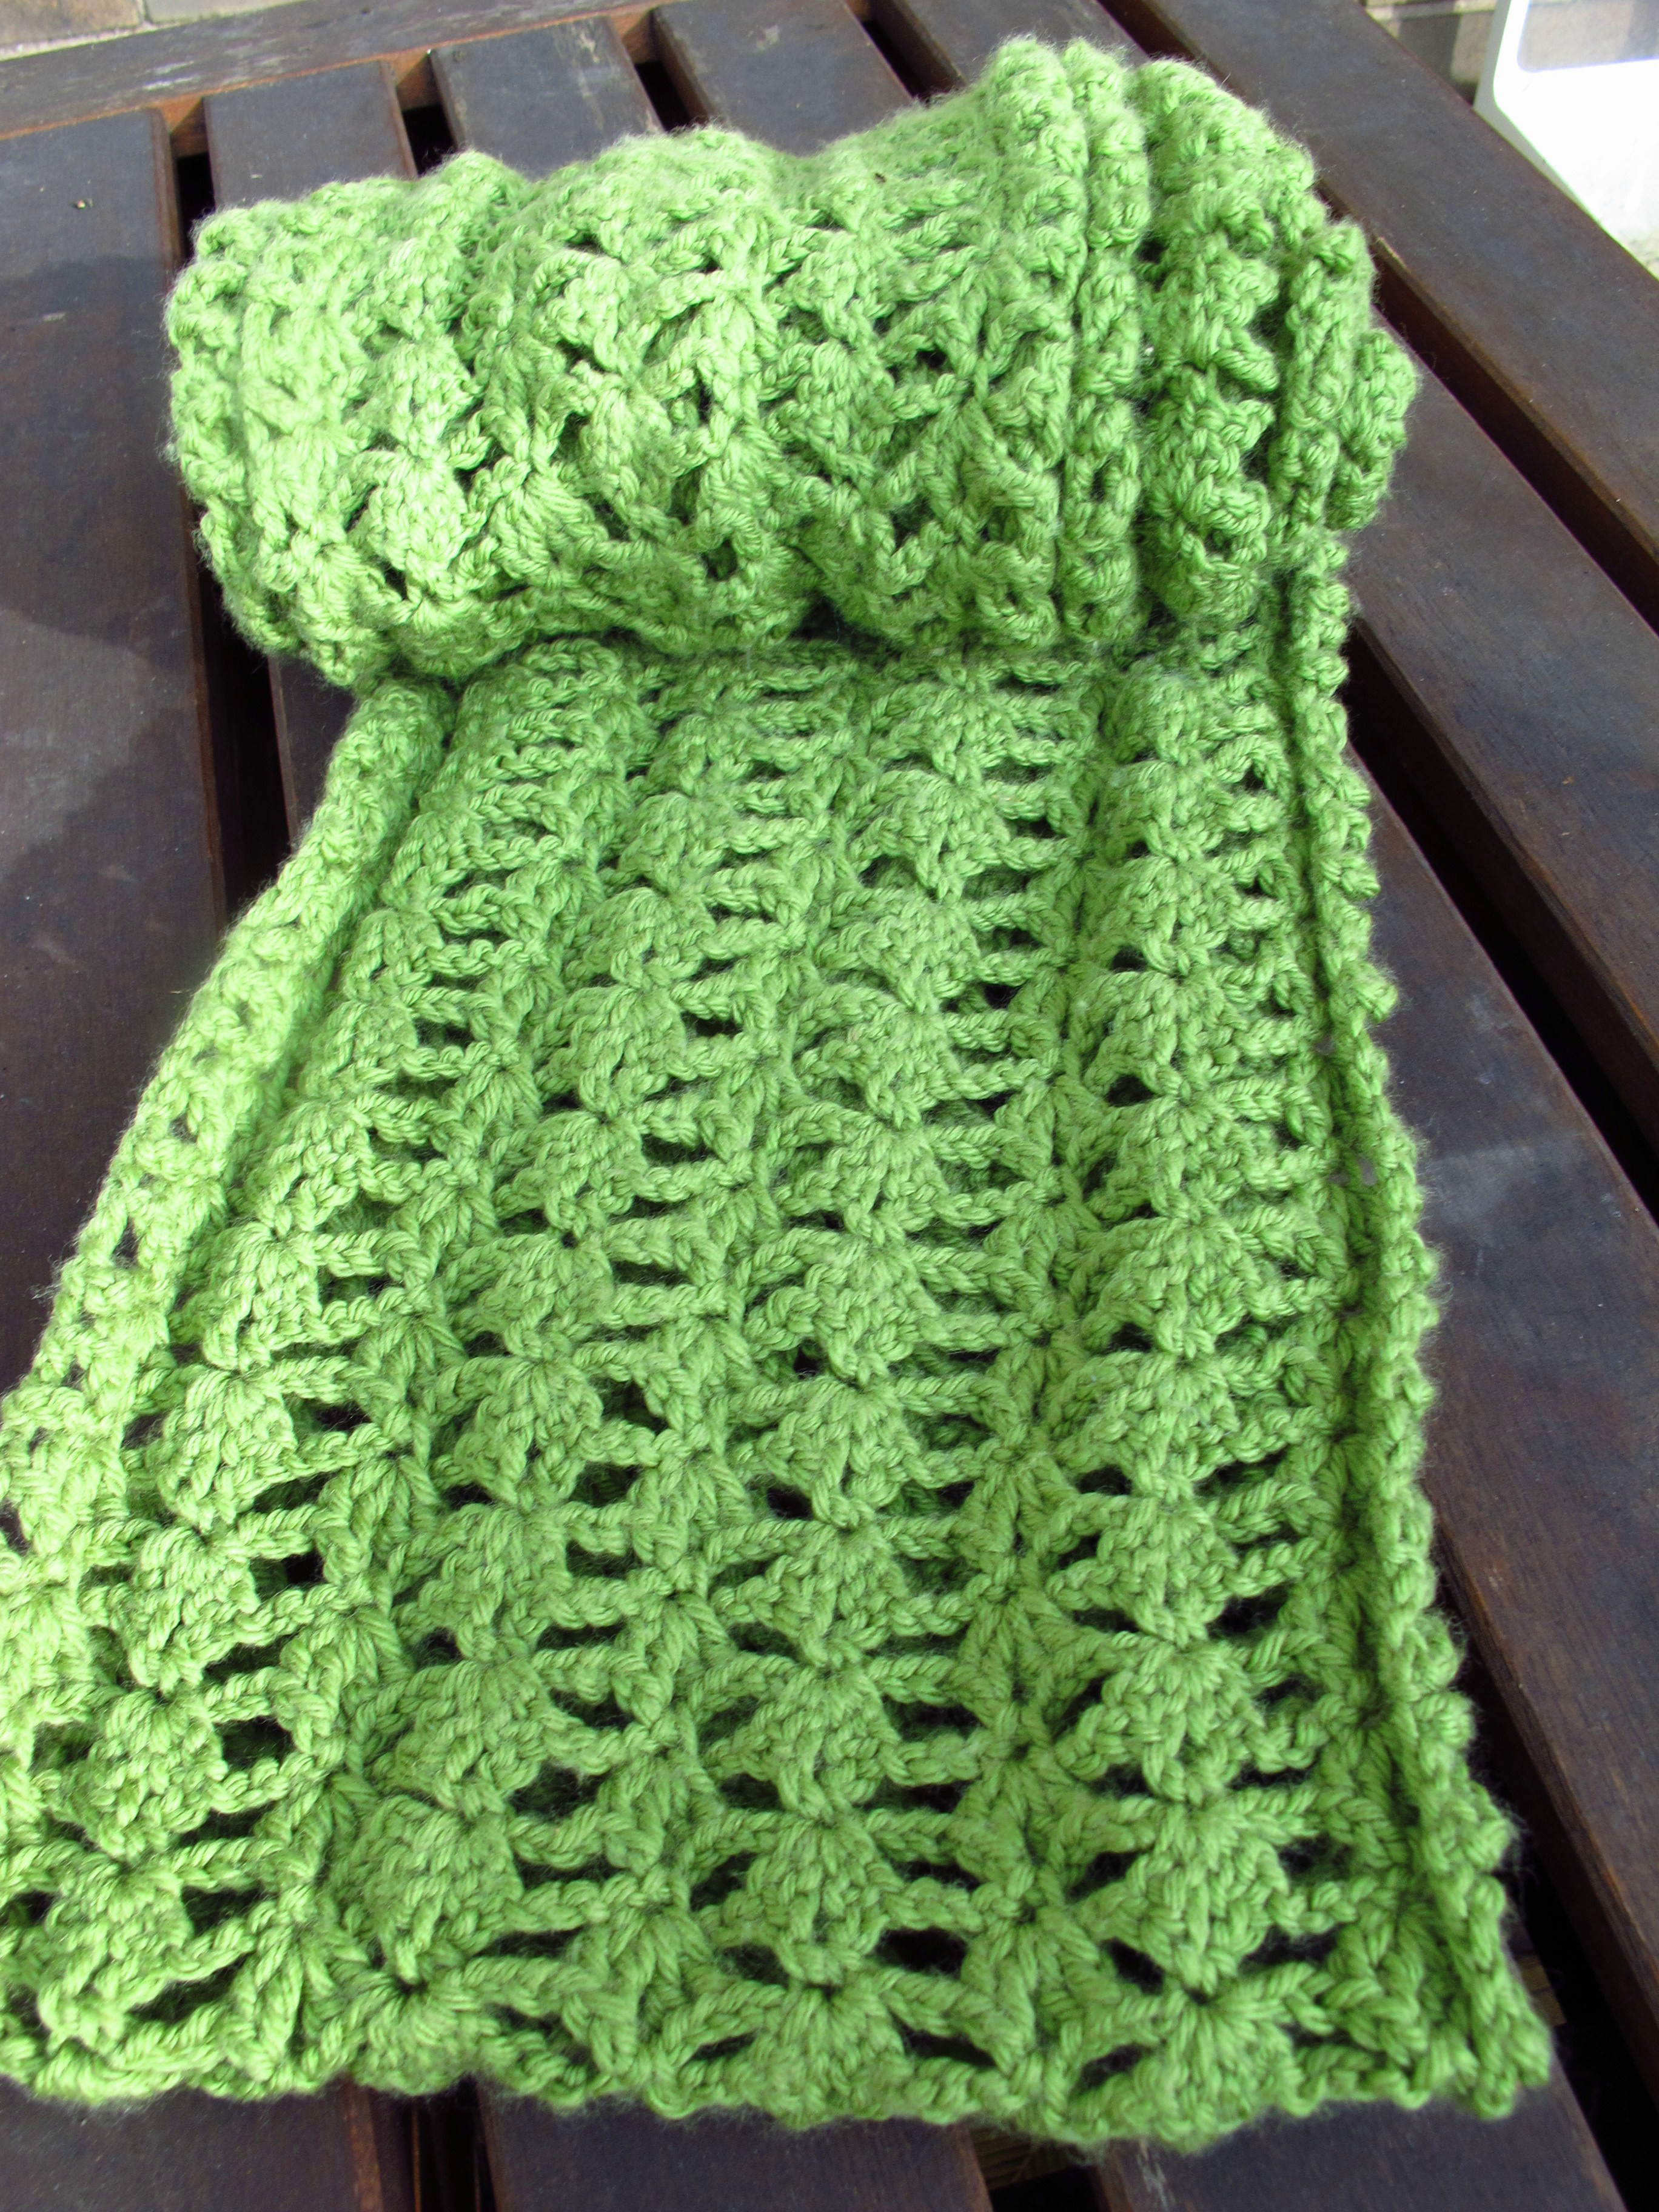 Best Of Diy Crocheted Lacy Green Infinity Scarf Pattern Lacy Crochet Scarf Patterns Of Amazing 50 Pics Lacy Crochet Scarf Patterns